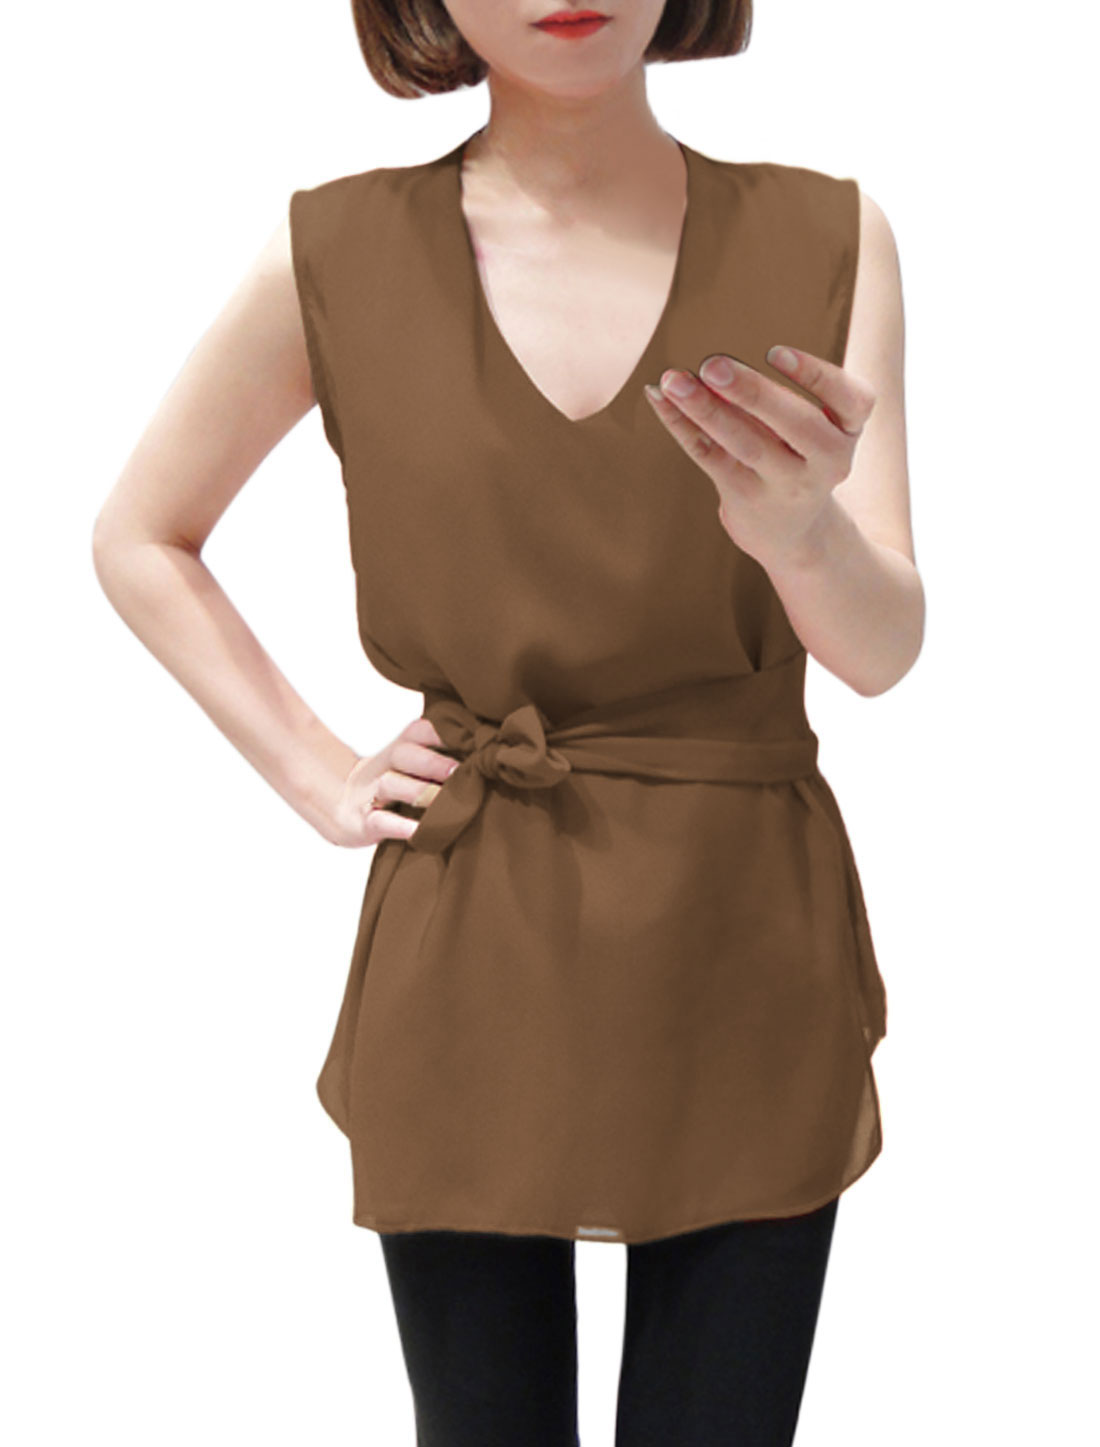 Lady Deep V Neck Elegant Blouse w Self-Tie Waist Strap Brown XS